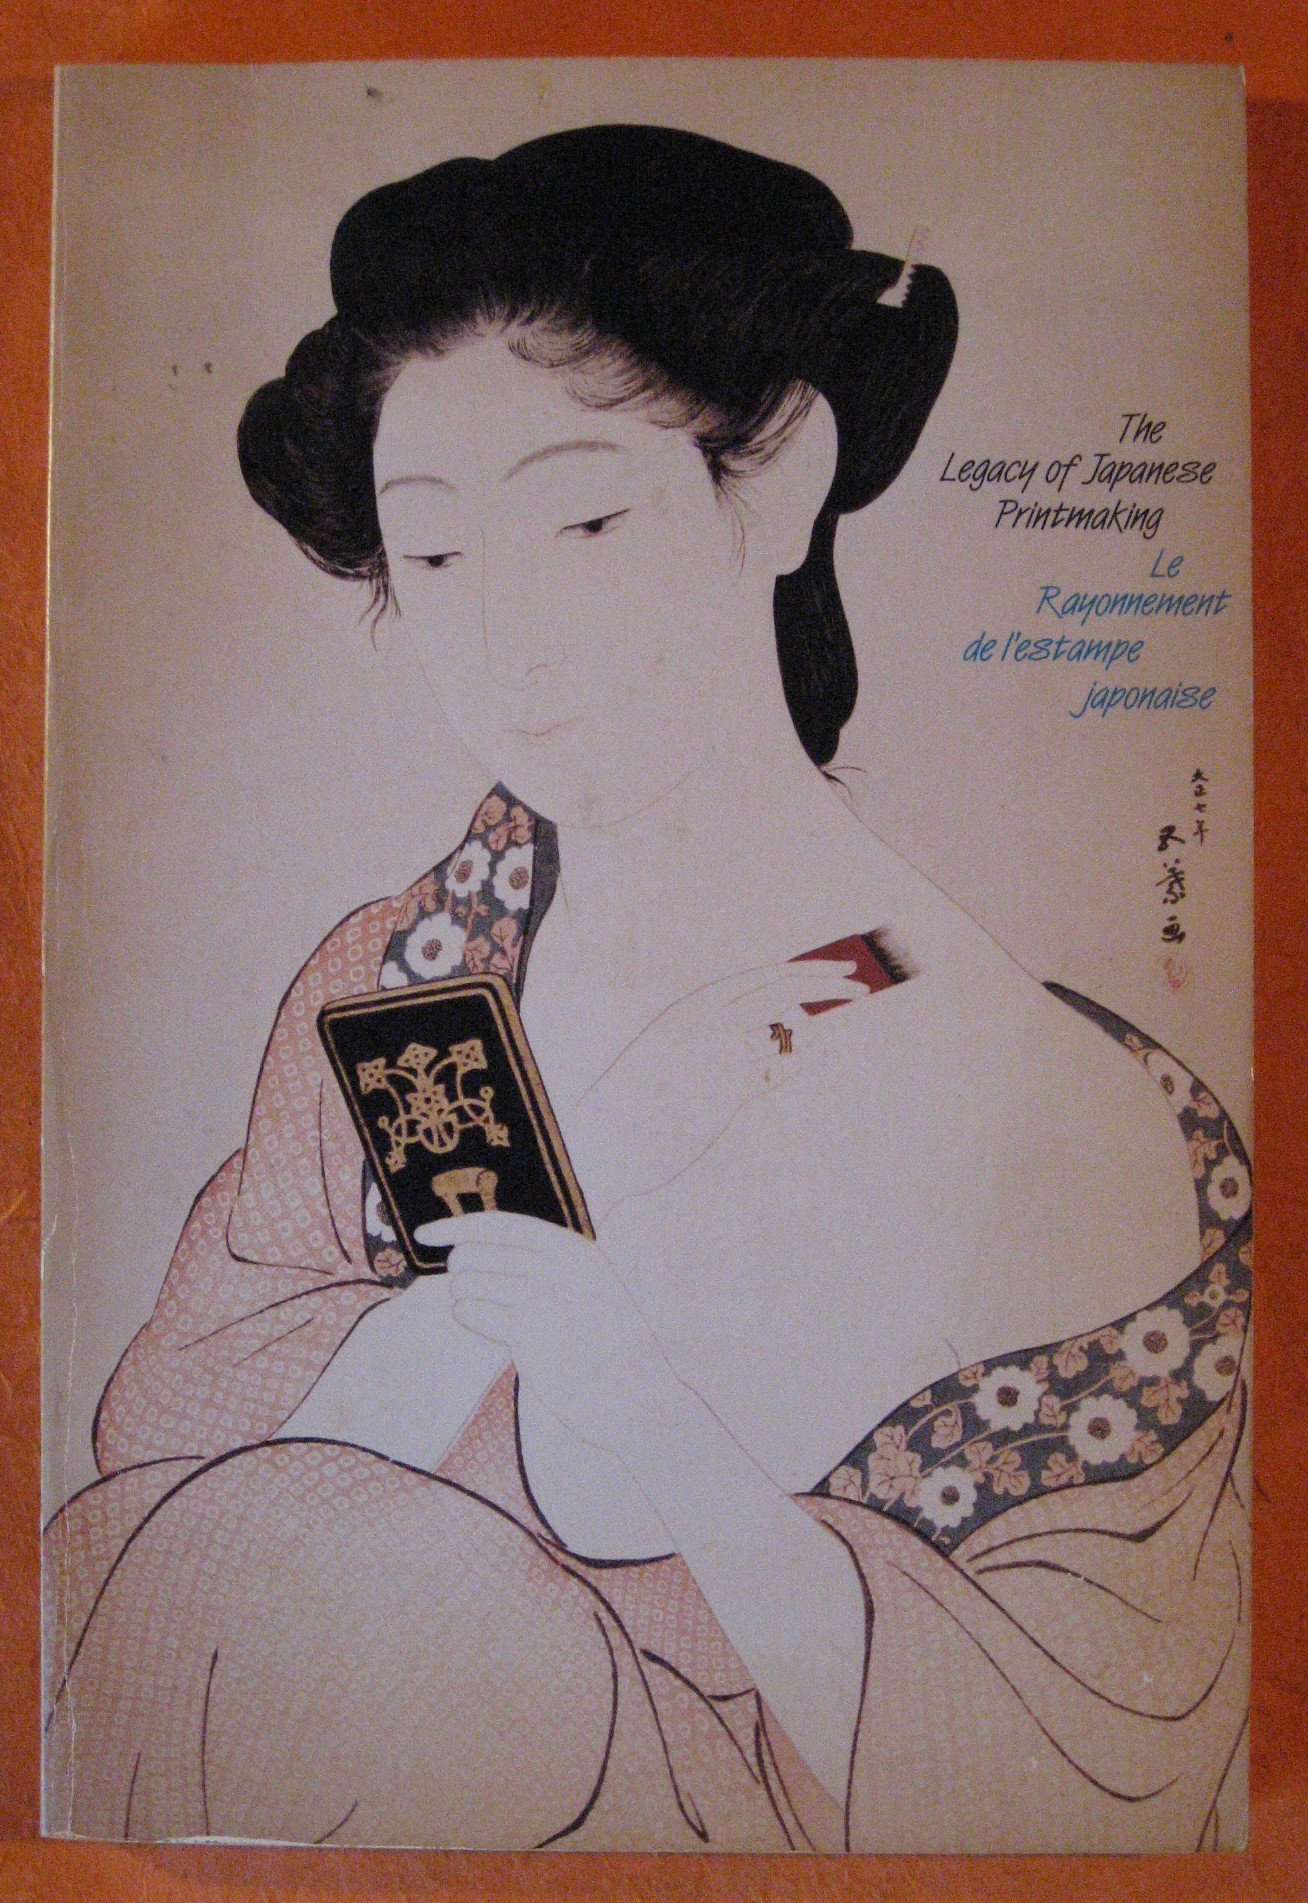 Image for The Legacy of Japanese Printmaking / Le rayonnement de l'estampe Japonaise